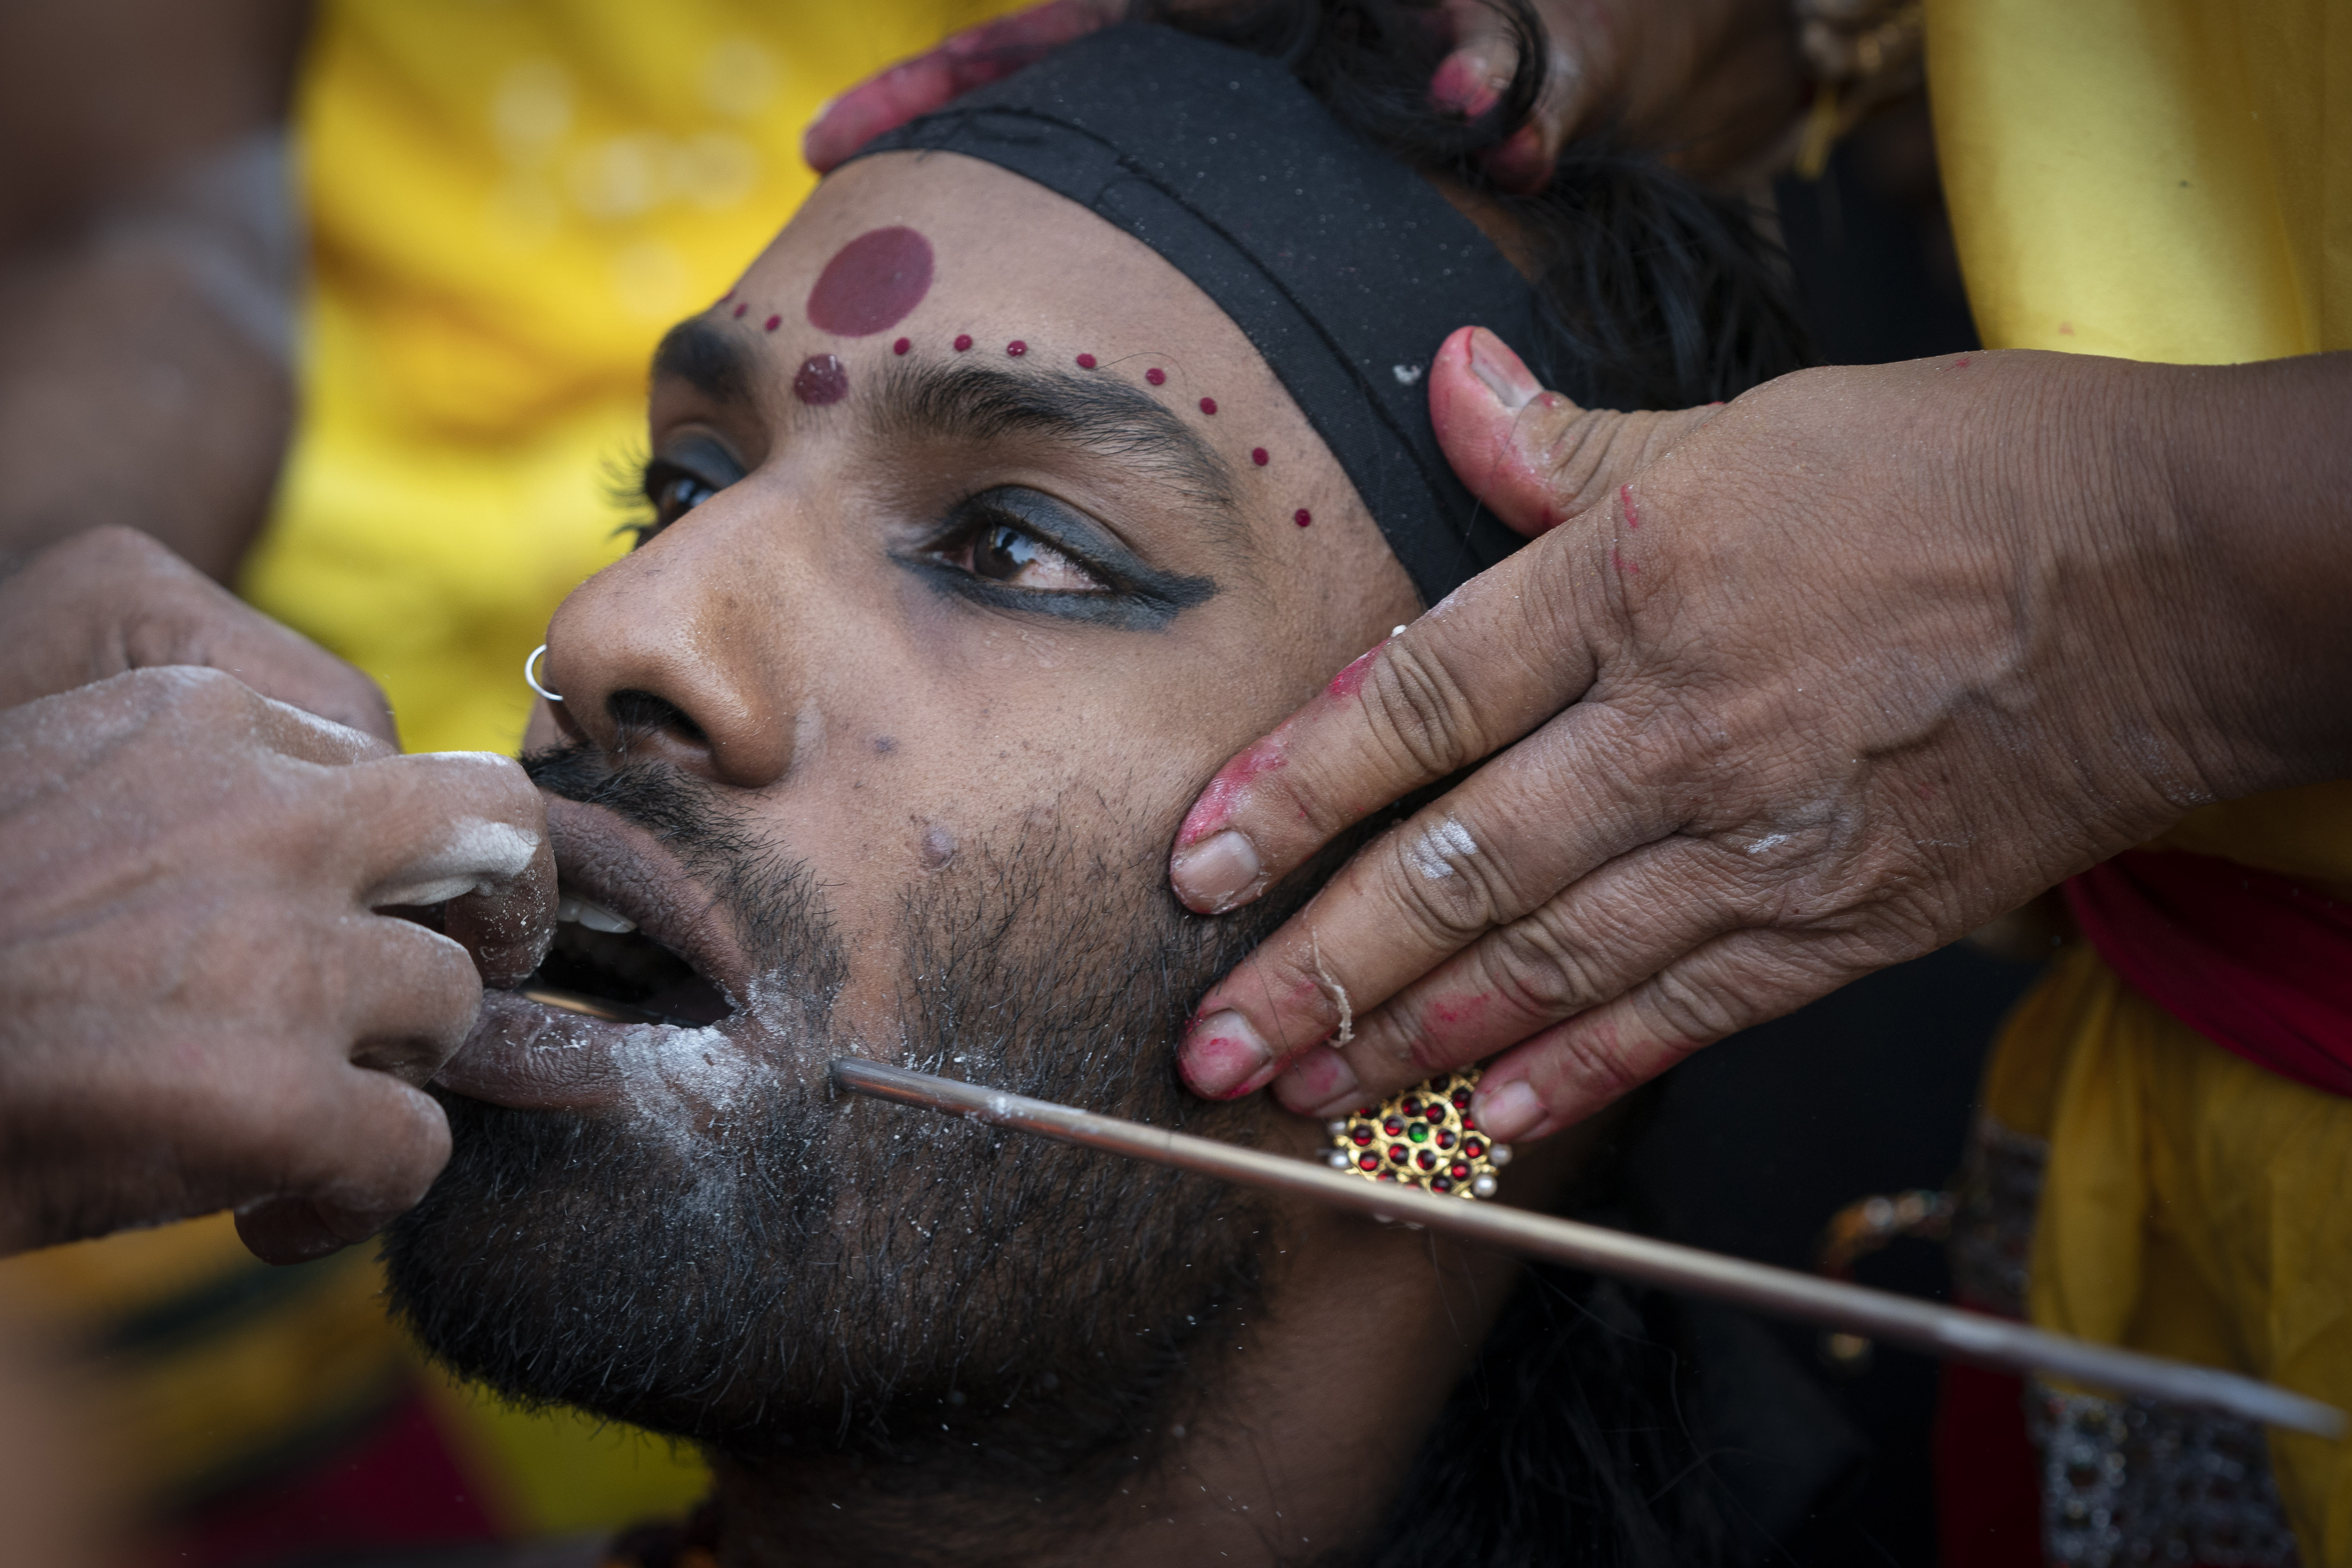 A Hindu devotee gets his tongue pierced with a metal rod during the Thaipusam festival at Batu Caves, outskirts of Kuala Lumpur, Saturday, Feb. 8, 2020. Thaipusam, which is celebrated in honor of Hindu god Lord Murugan, is an annual procession by Hindu devotees seeking blessings, fulfilling vows and offering thanks. (AP Photo/Vincent Thian)